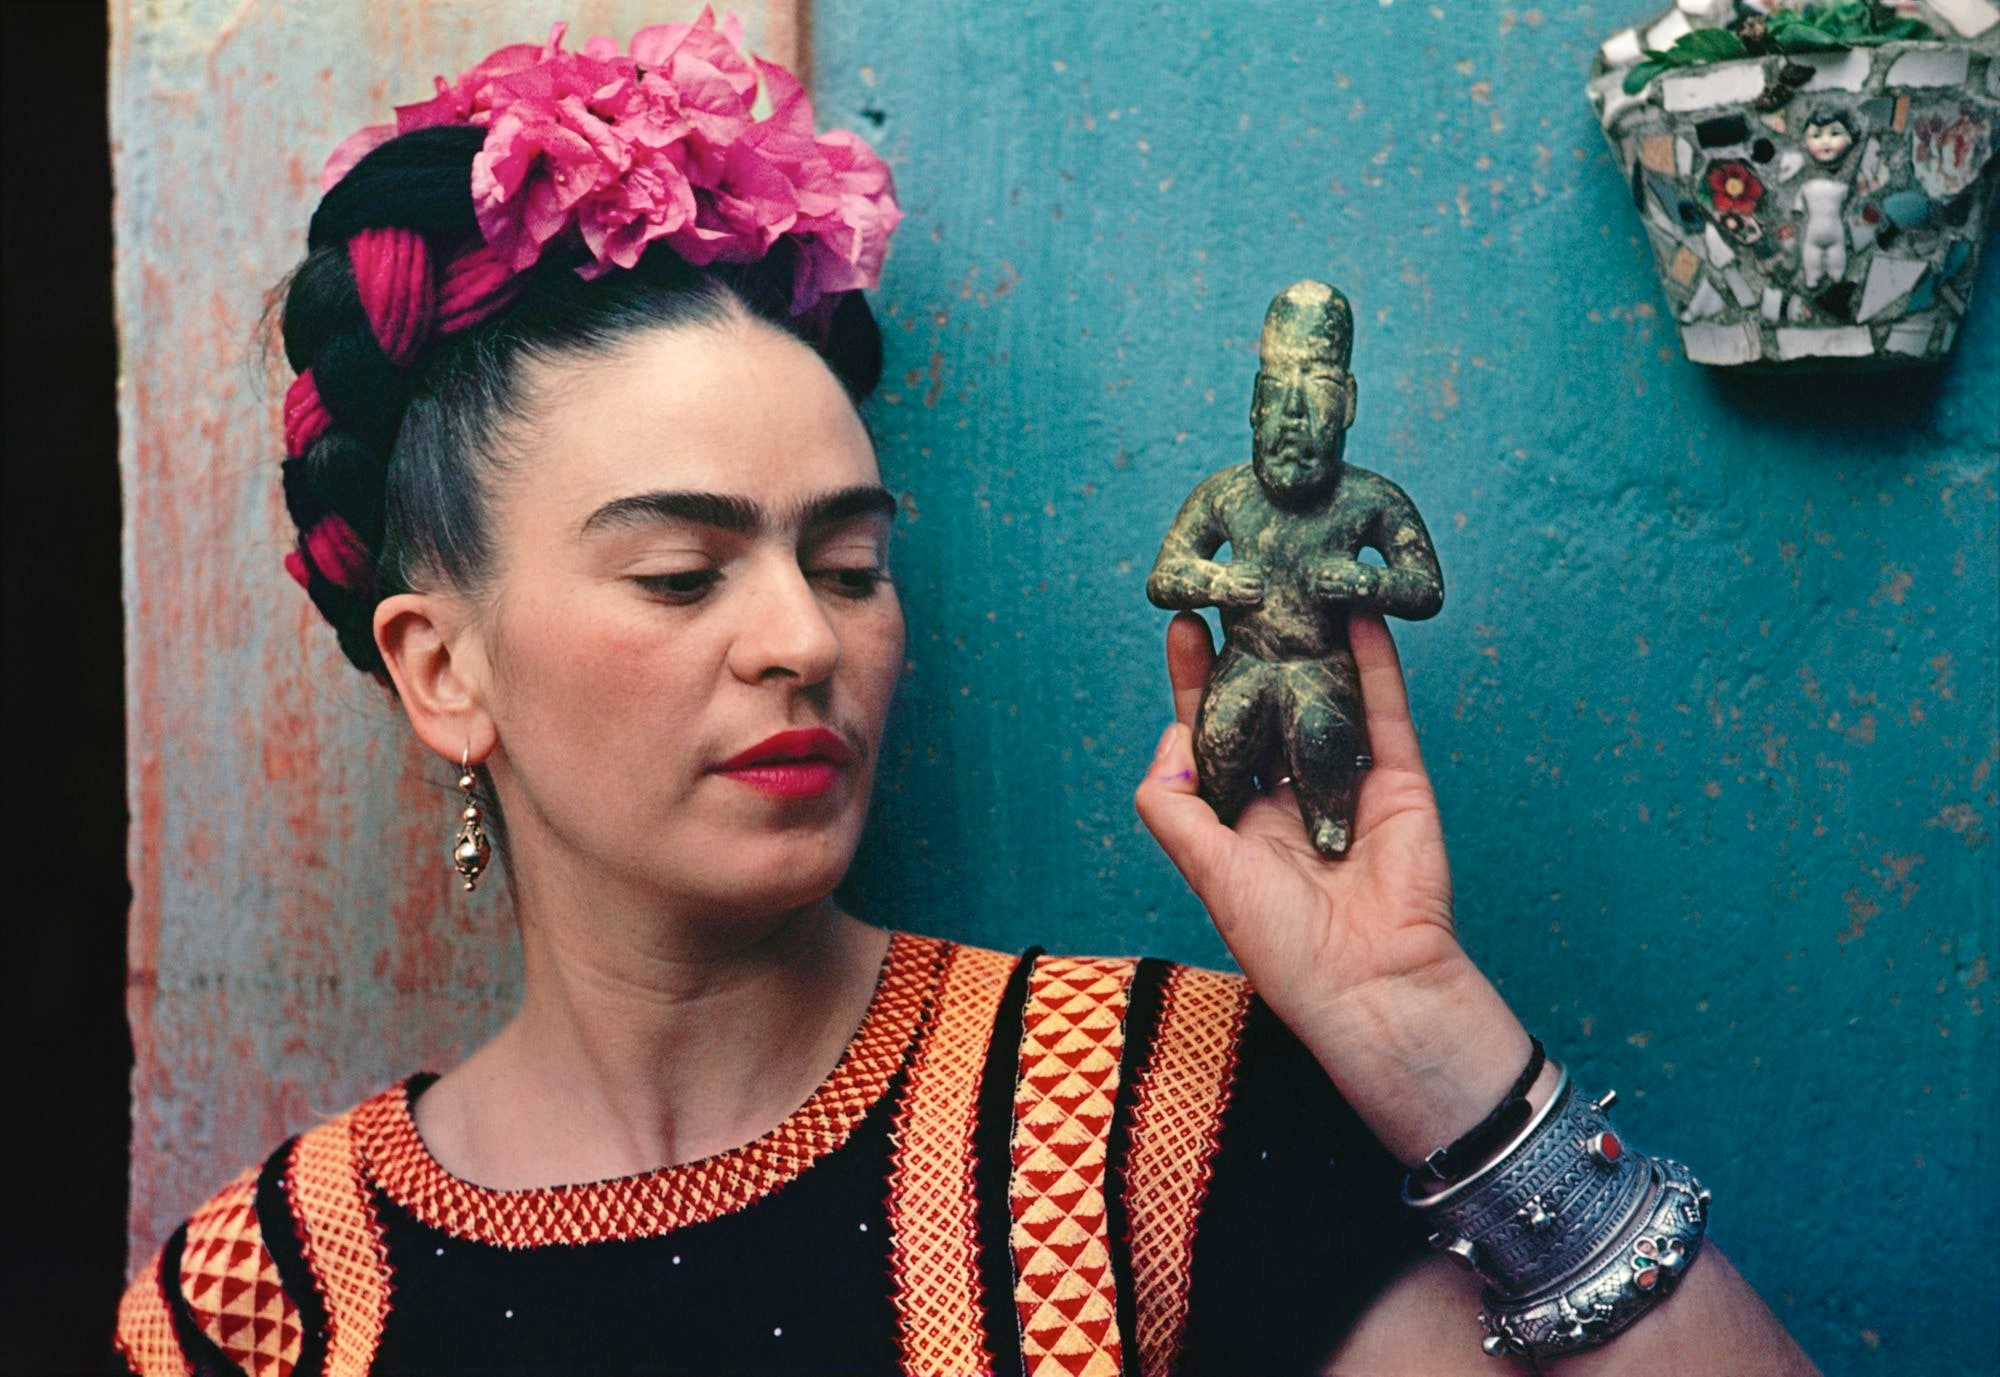 Photograph of Frida Kahlo holding a small carved idol. She's wearing a black and orange woven top and has flowers and ribbons braided into her hair, and she's standing against a turquoise wall.